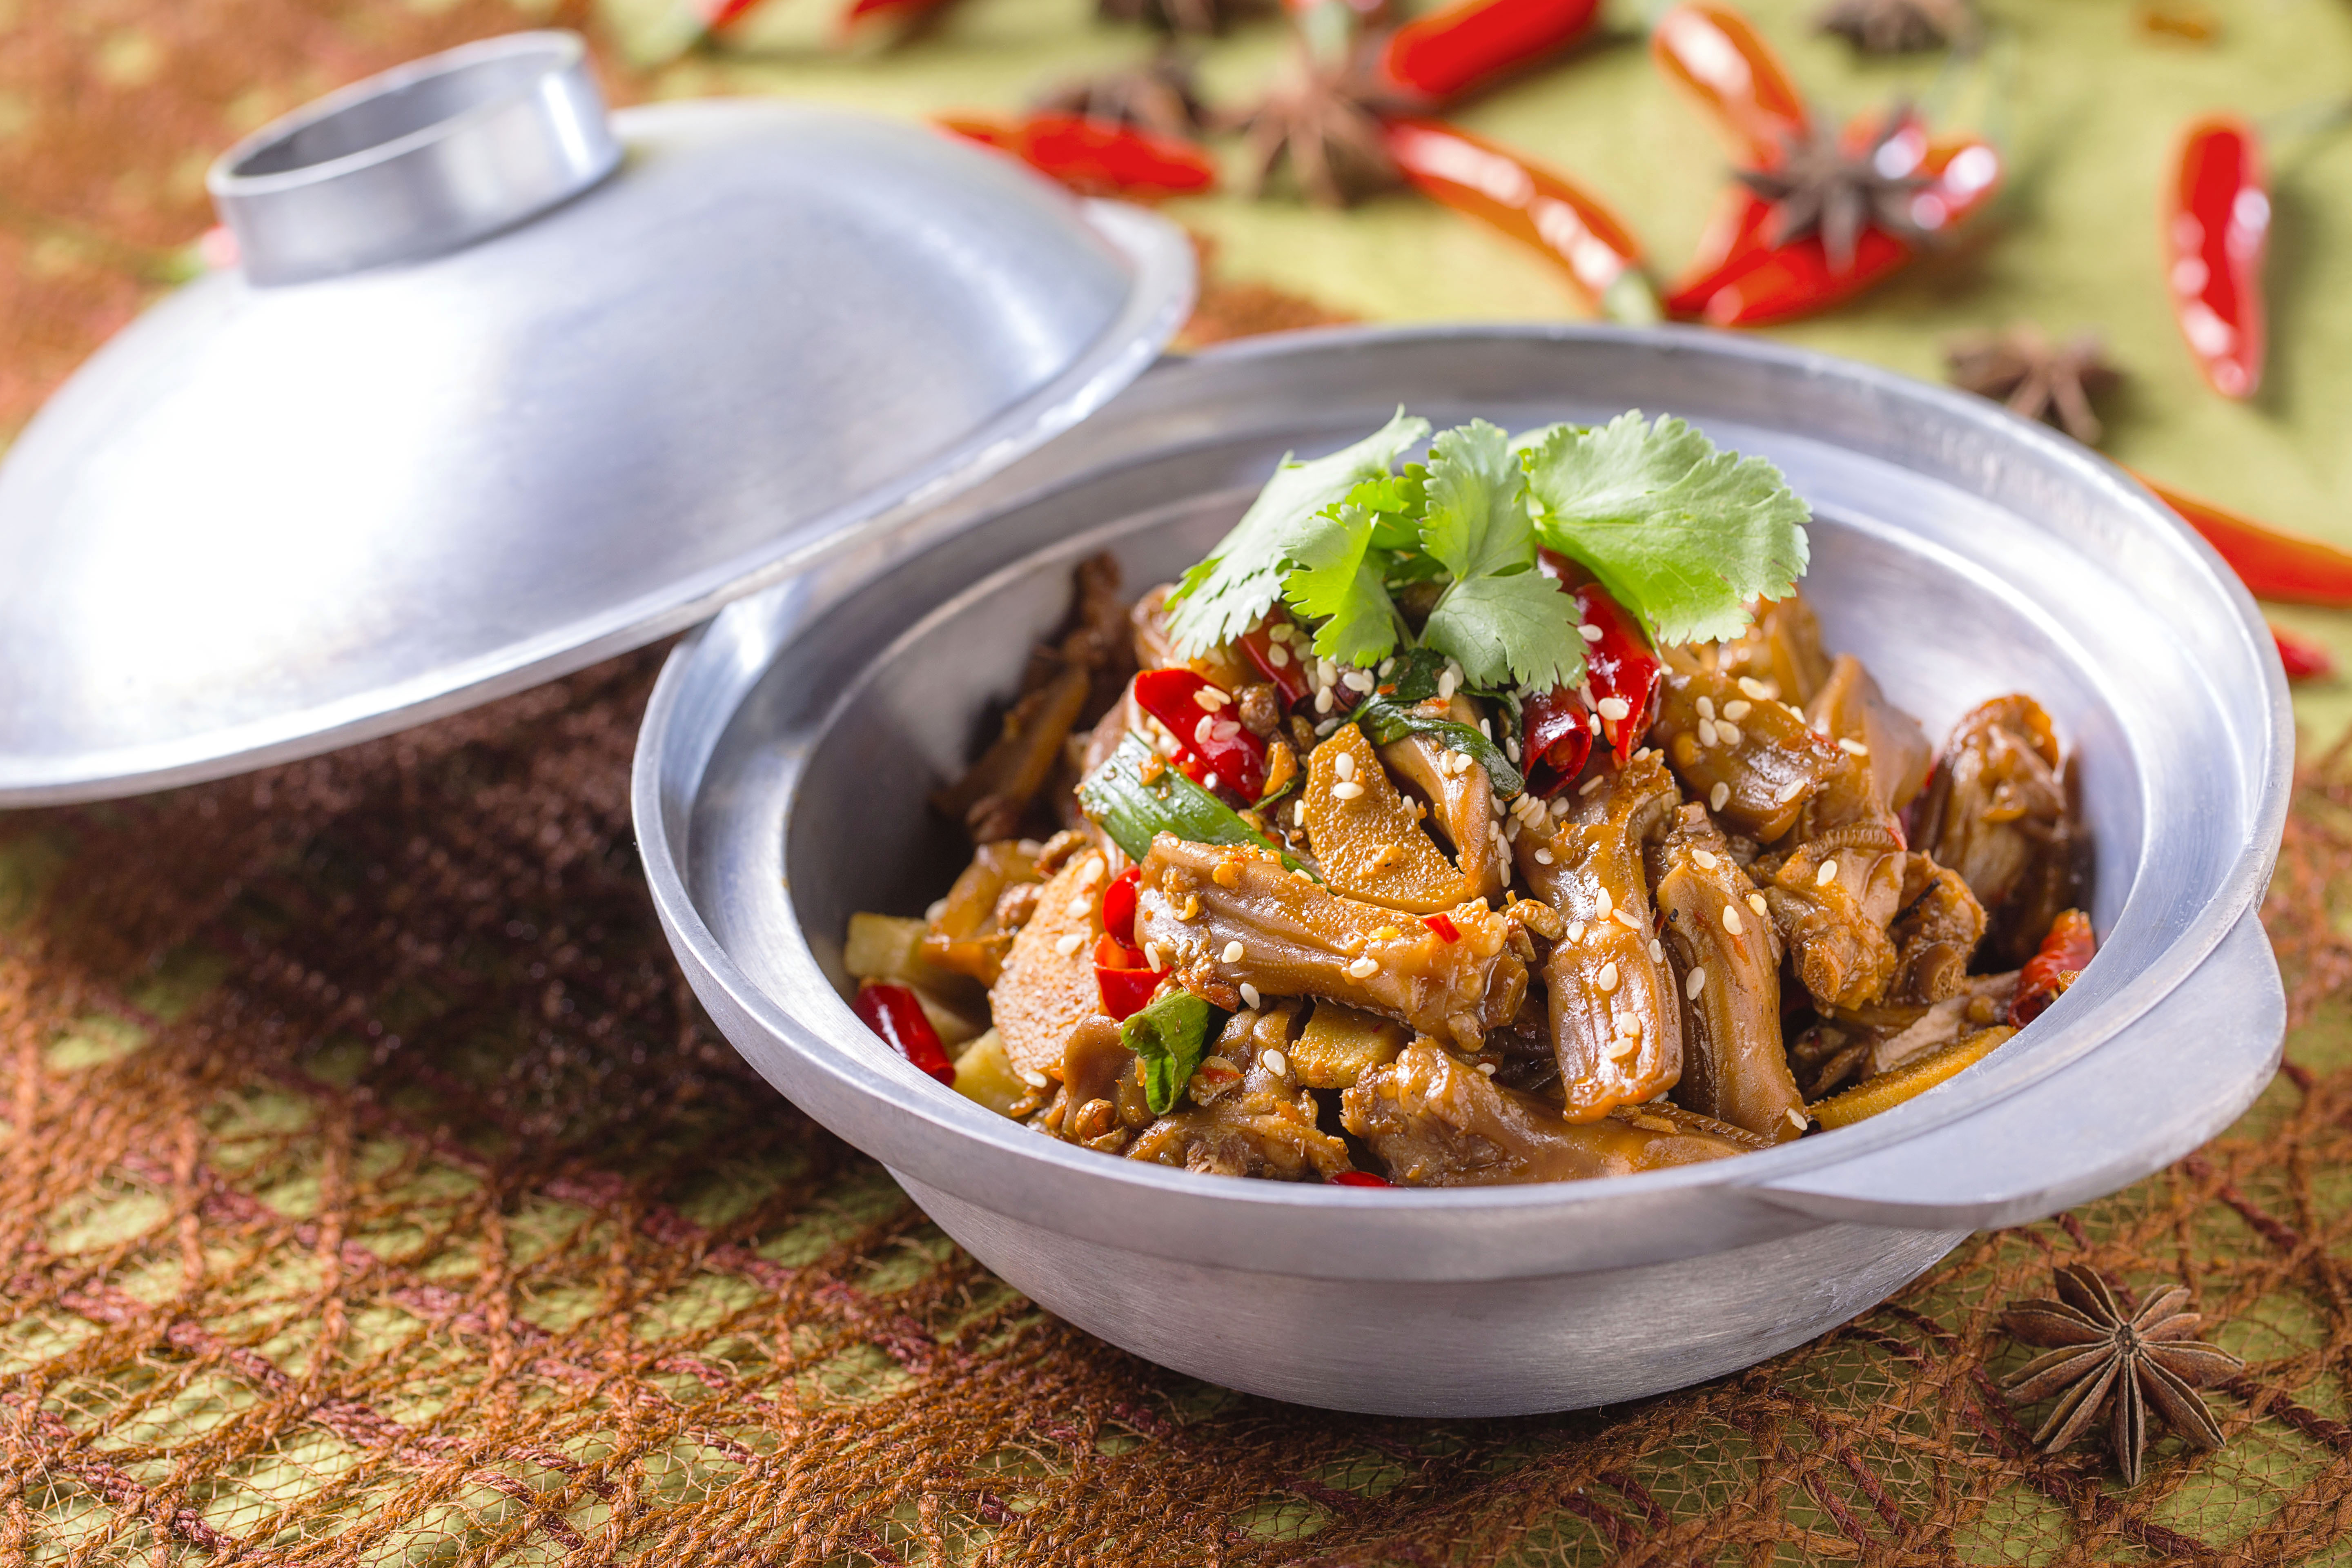 Stir-fried Marinated Duck Tongues with Sichuan Chili